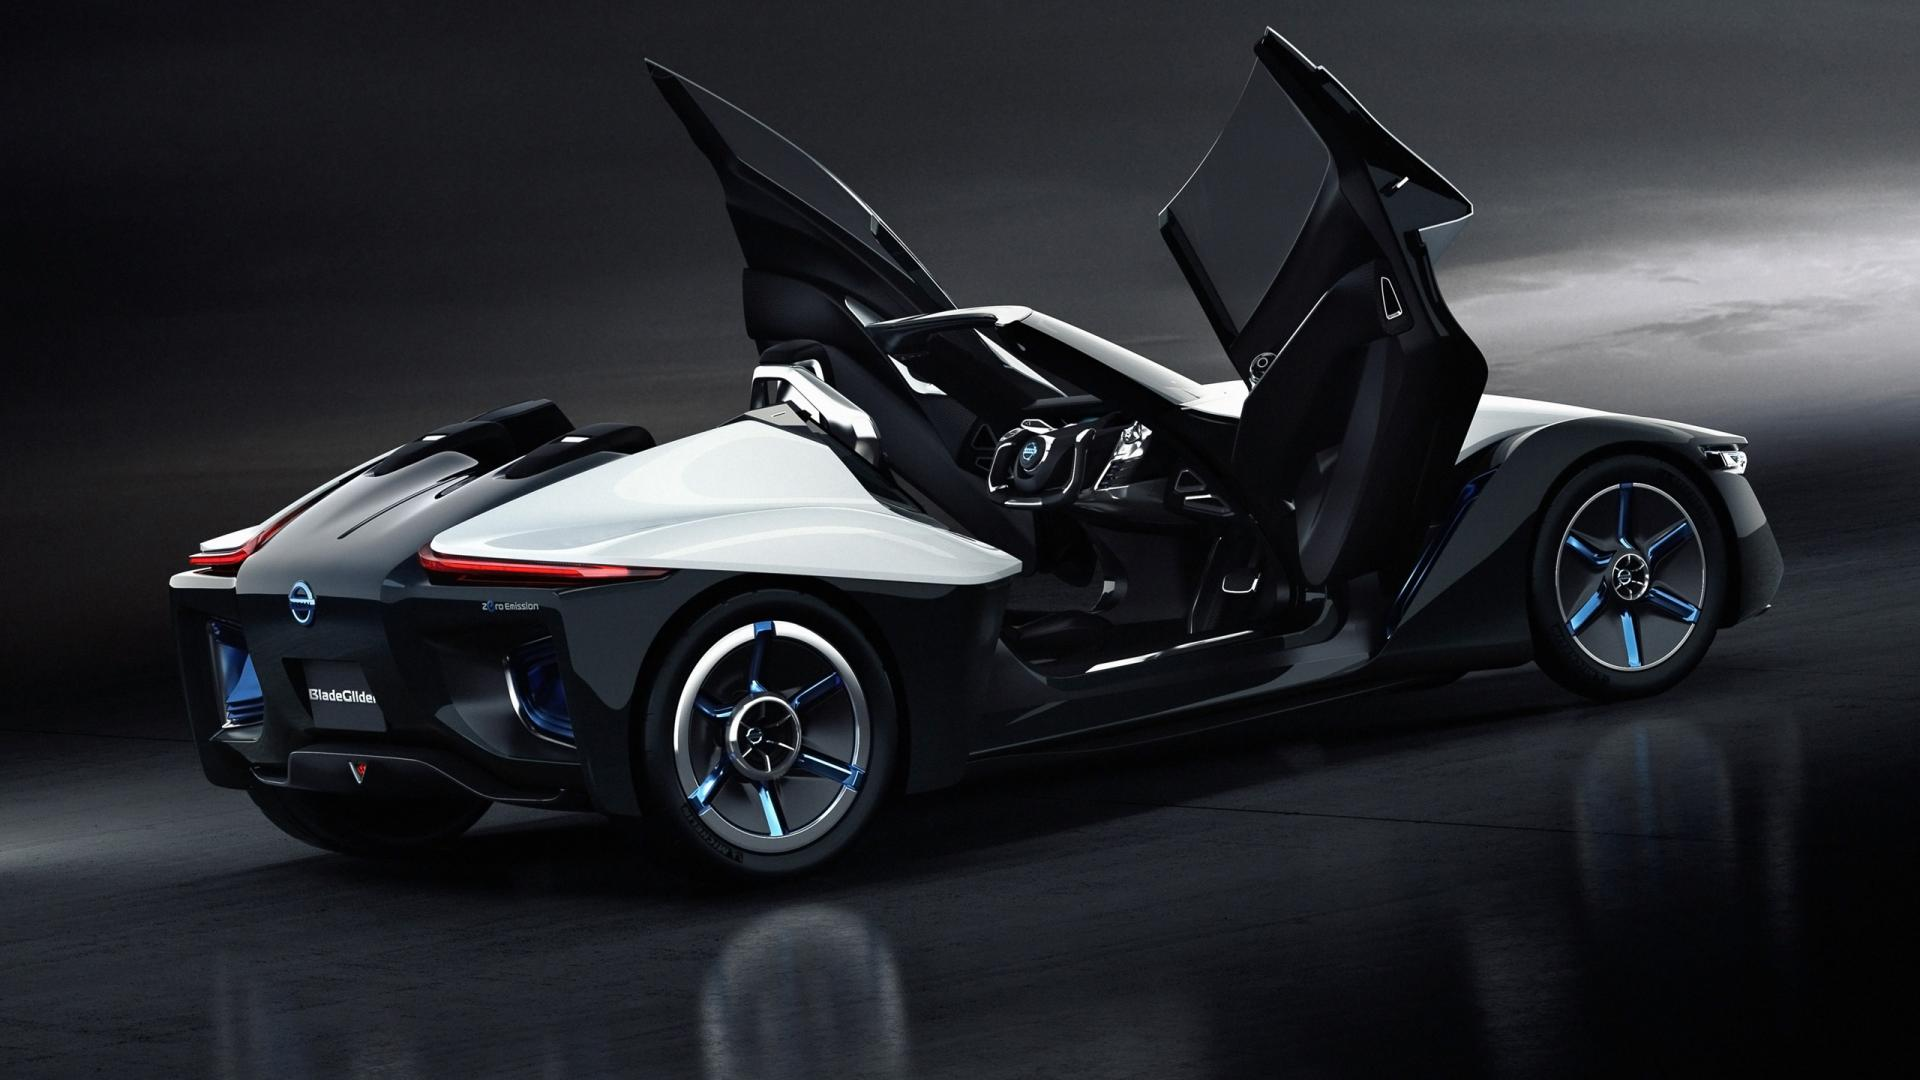 nissan-bladeglider-wallpapers-65503-9592722.jpg